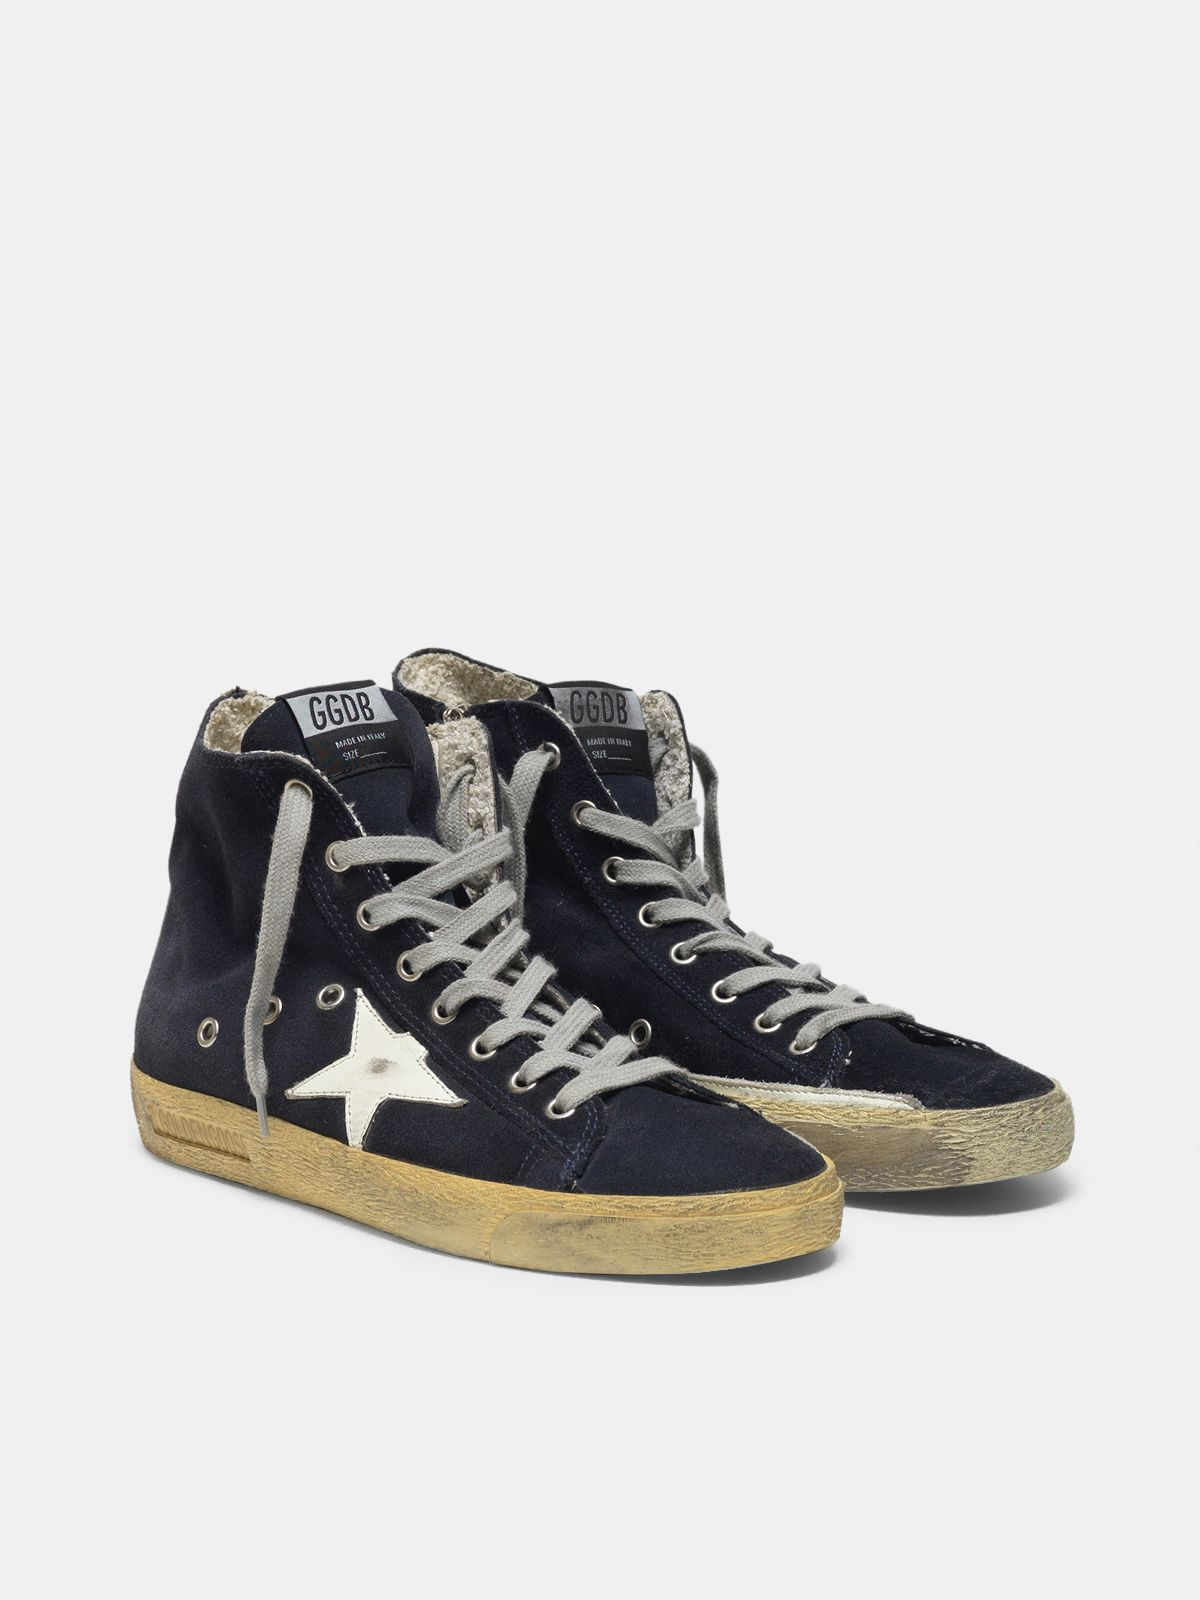 Golden Goose - Francy sneakers in suede with leather star in